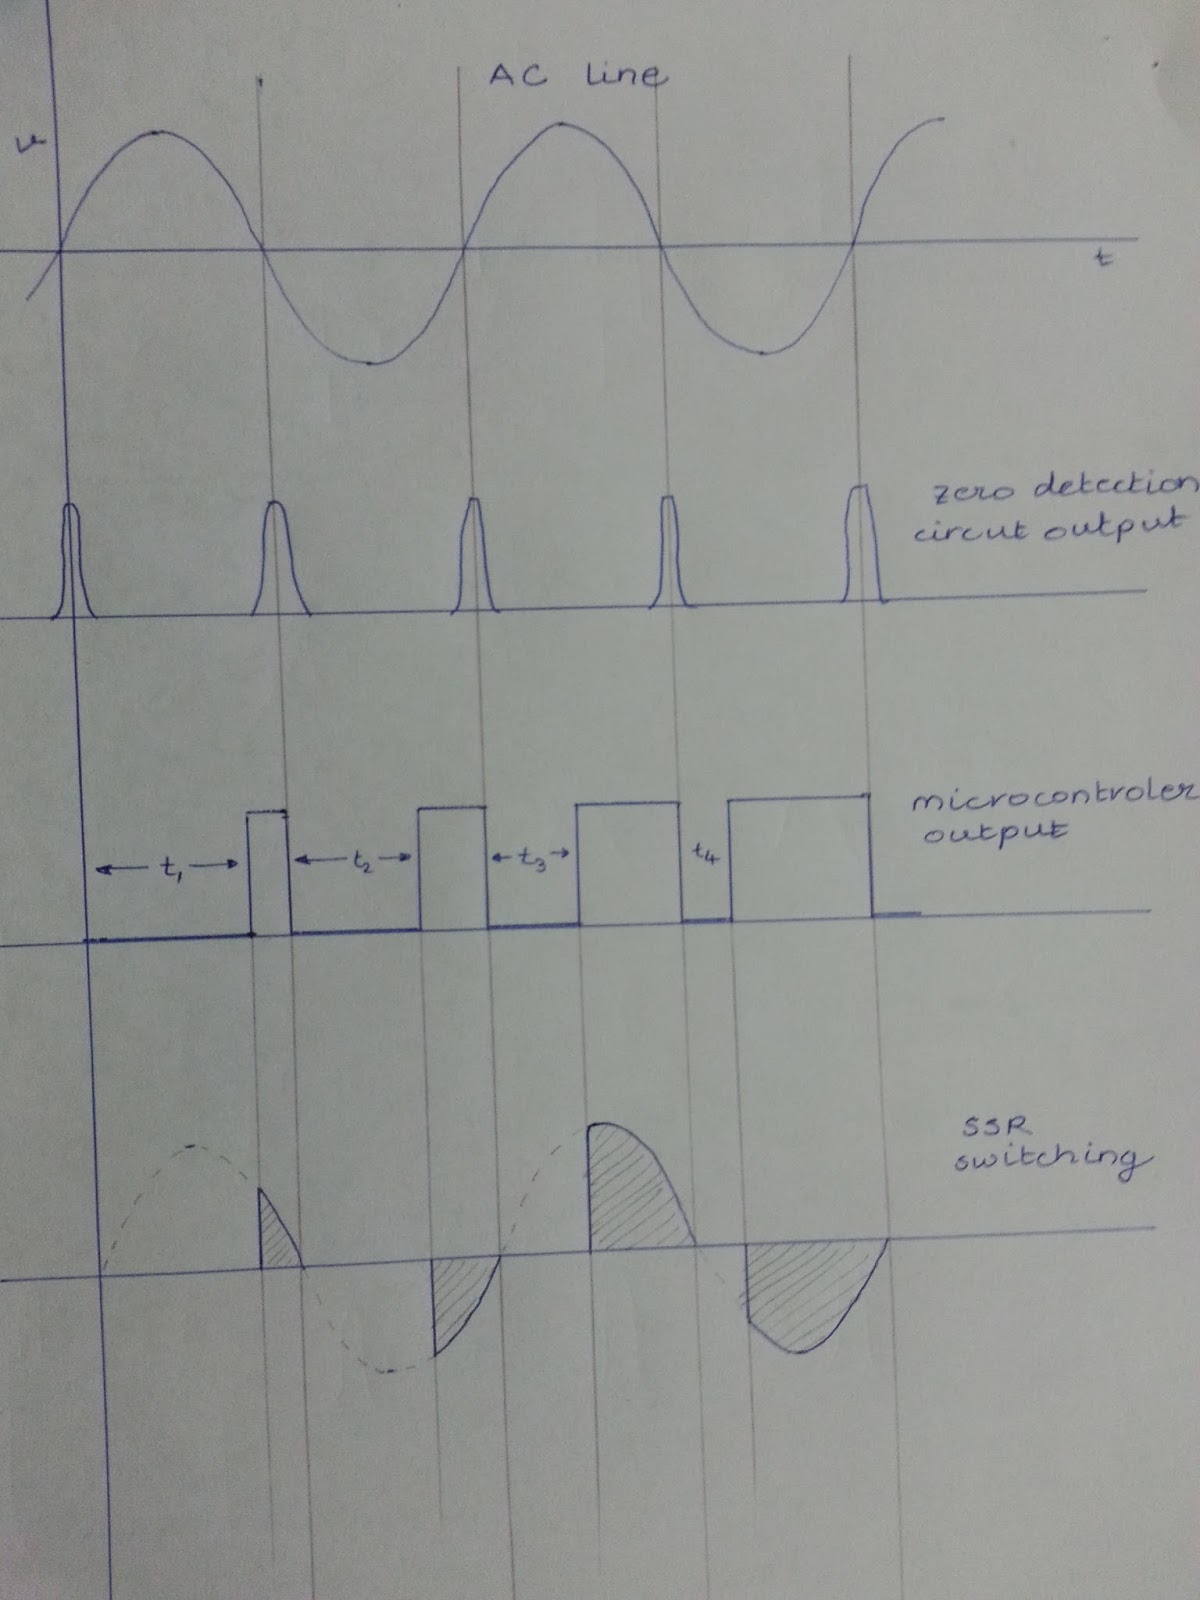 Electronics September 2015 Zero Crossing Circuit The Cross Detection Is Nothing But A That Will Generate Pulse When Ac Voltage Crosses Volts